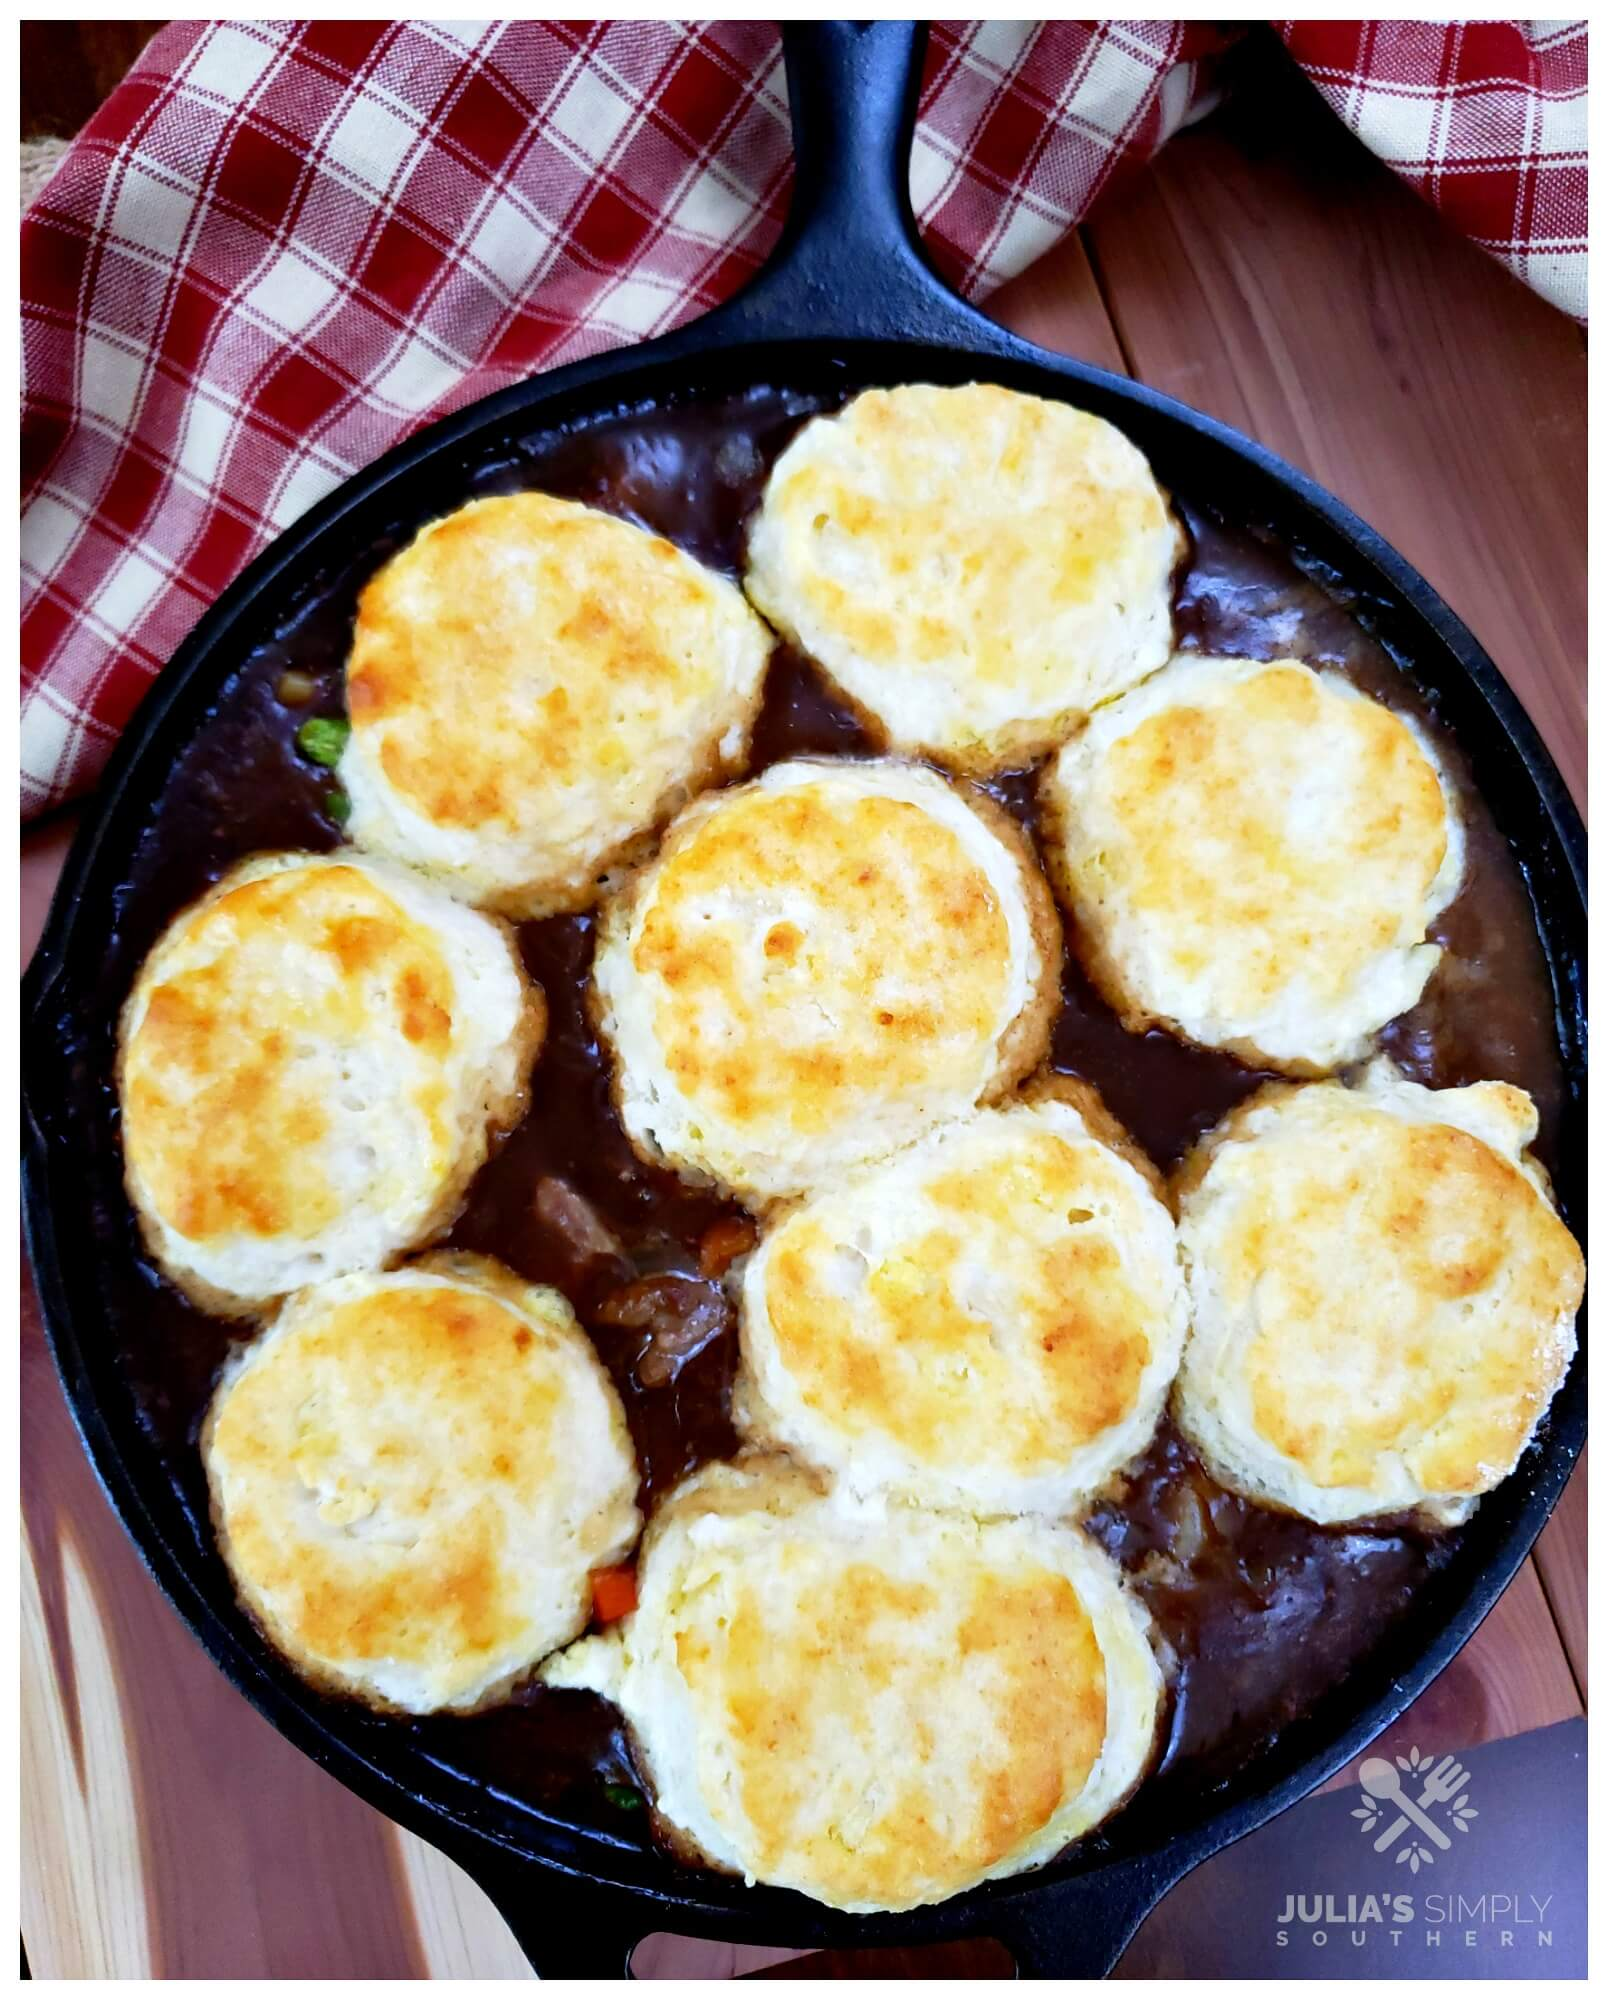 Beautiful one skillet pot pie meal, made with beef and vegetables then topped with biscuits before baking